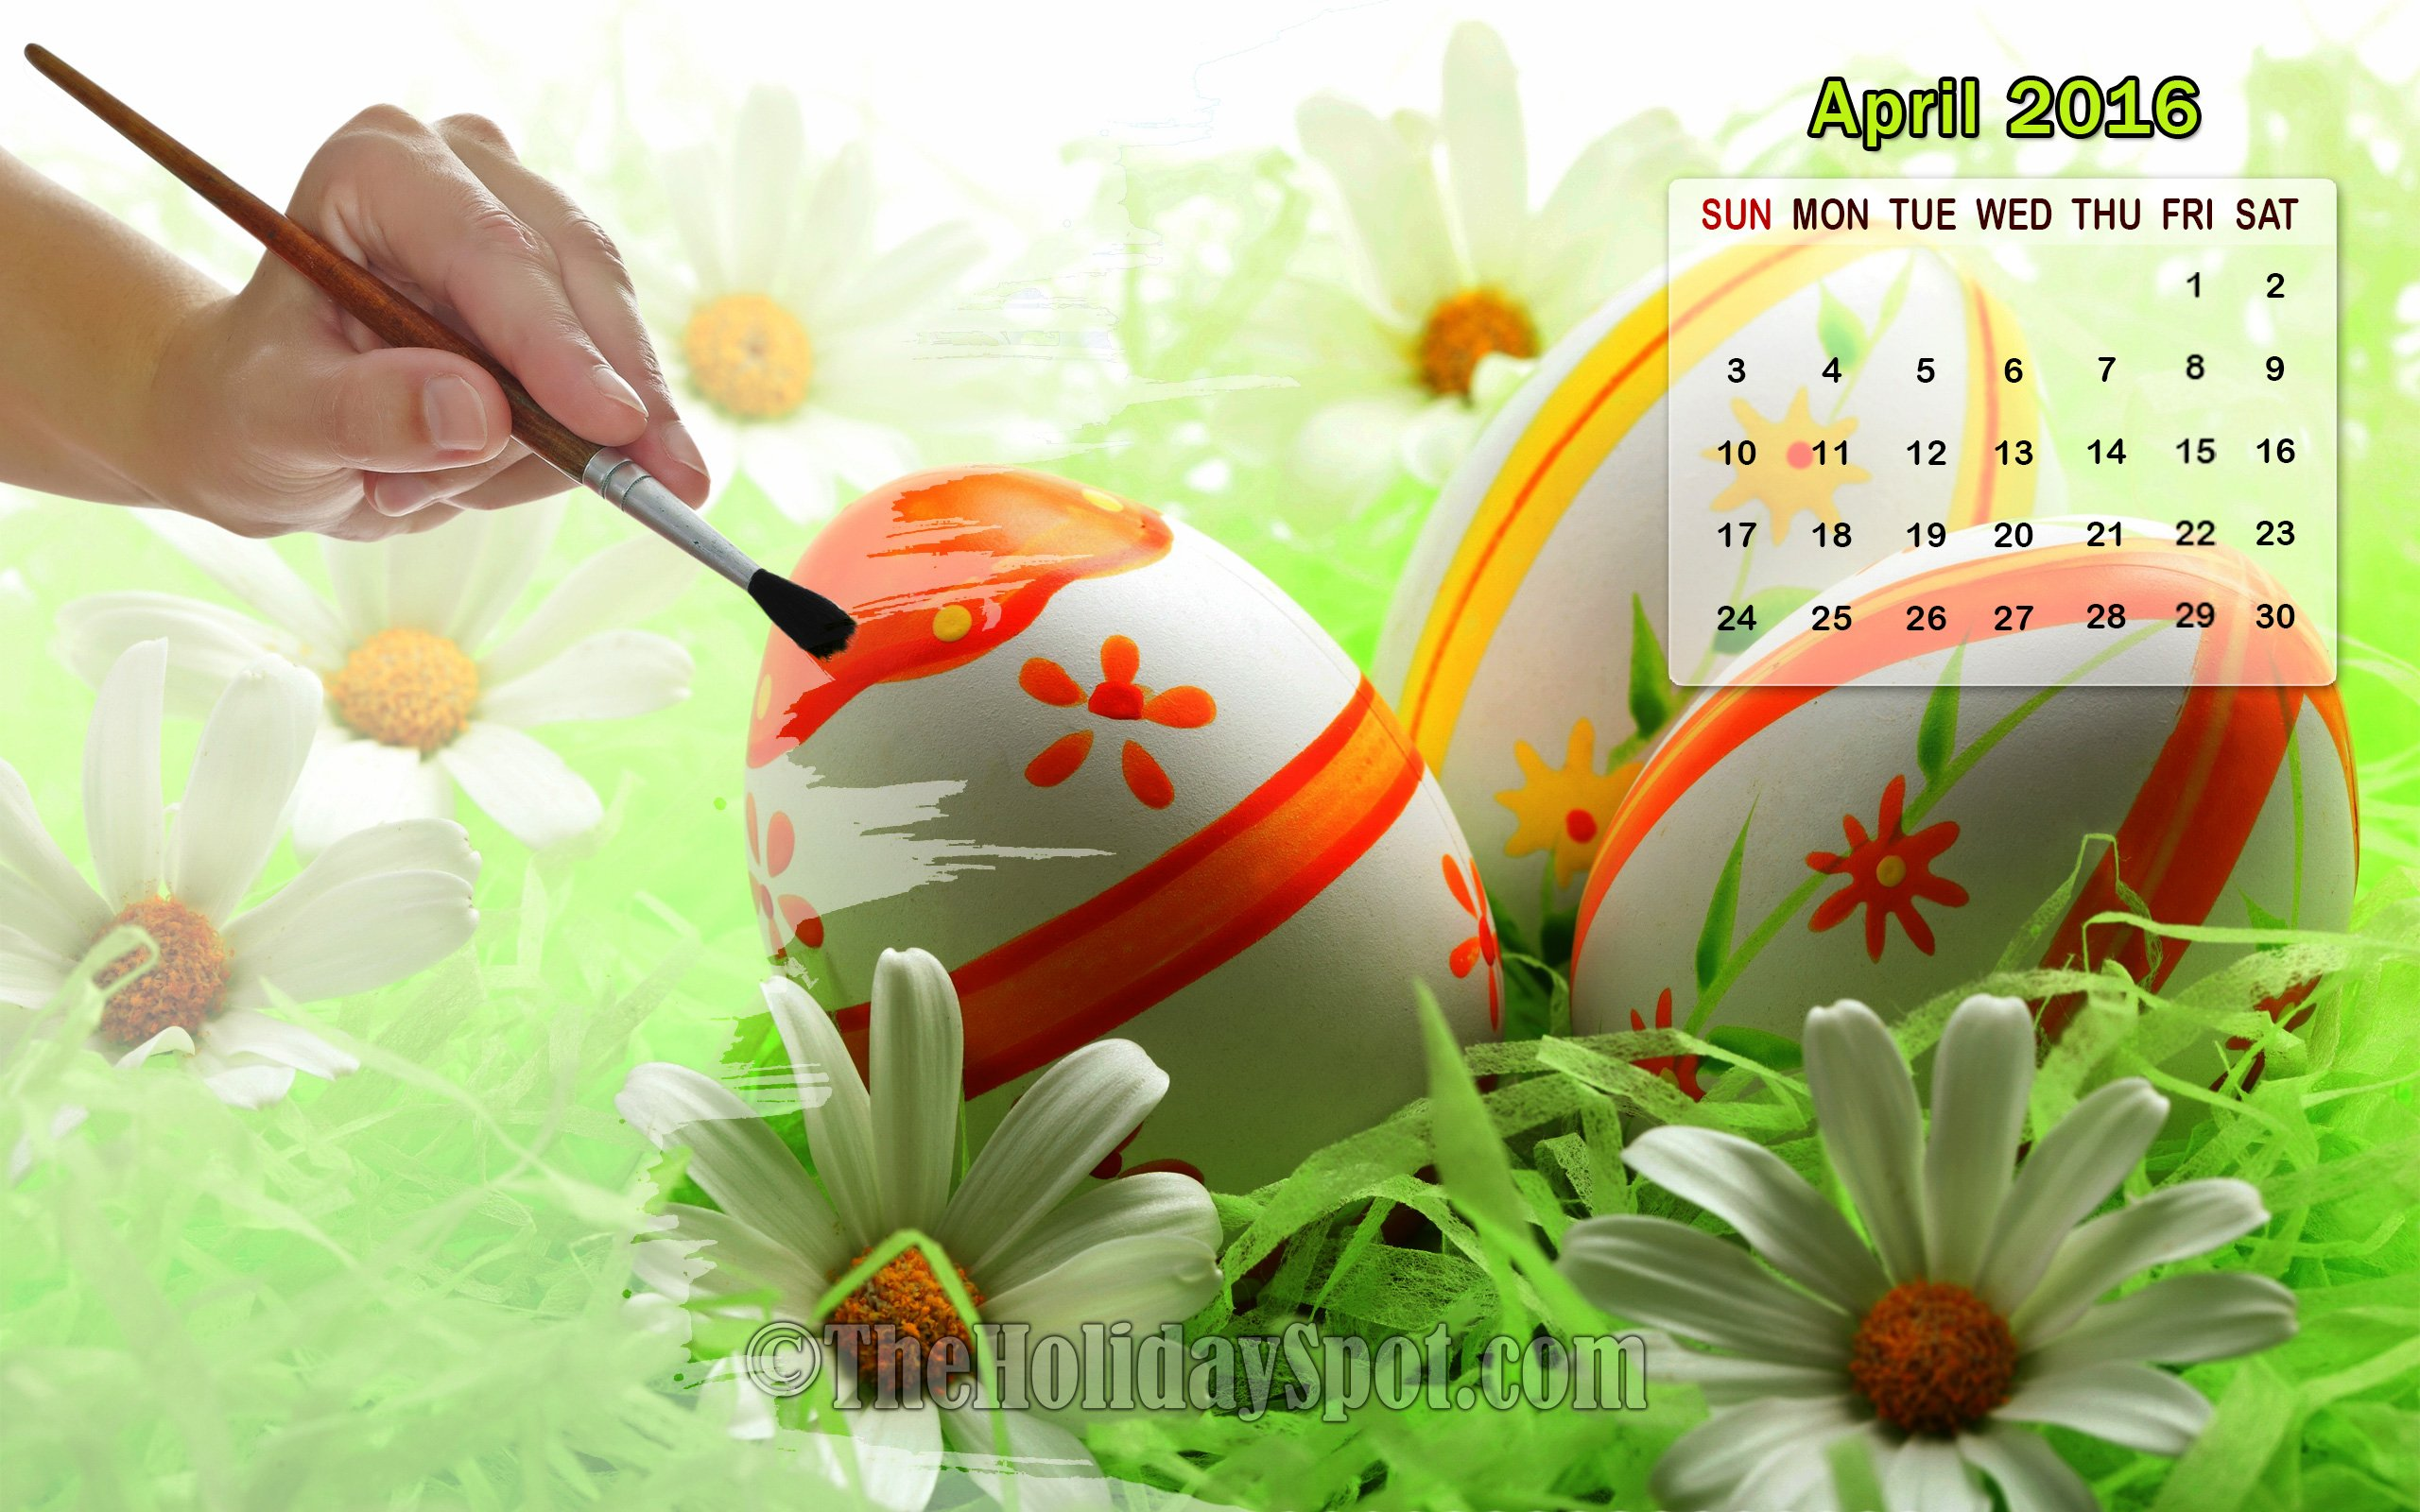 Month wise Calendar Wallpapers for the Whole Year 2560x1600